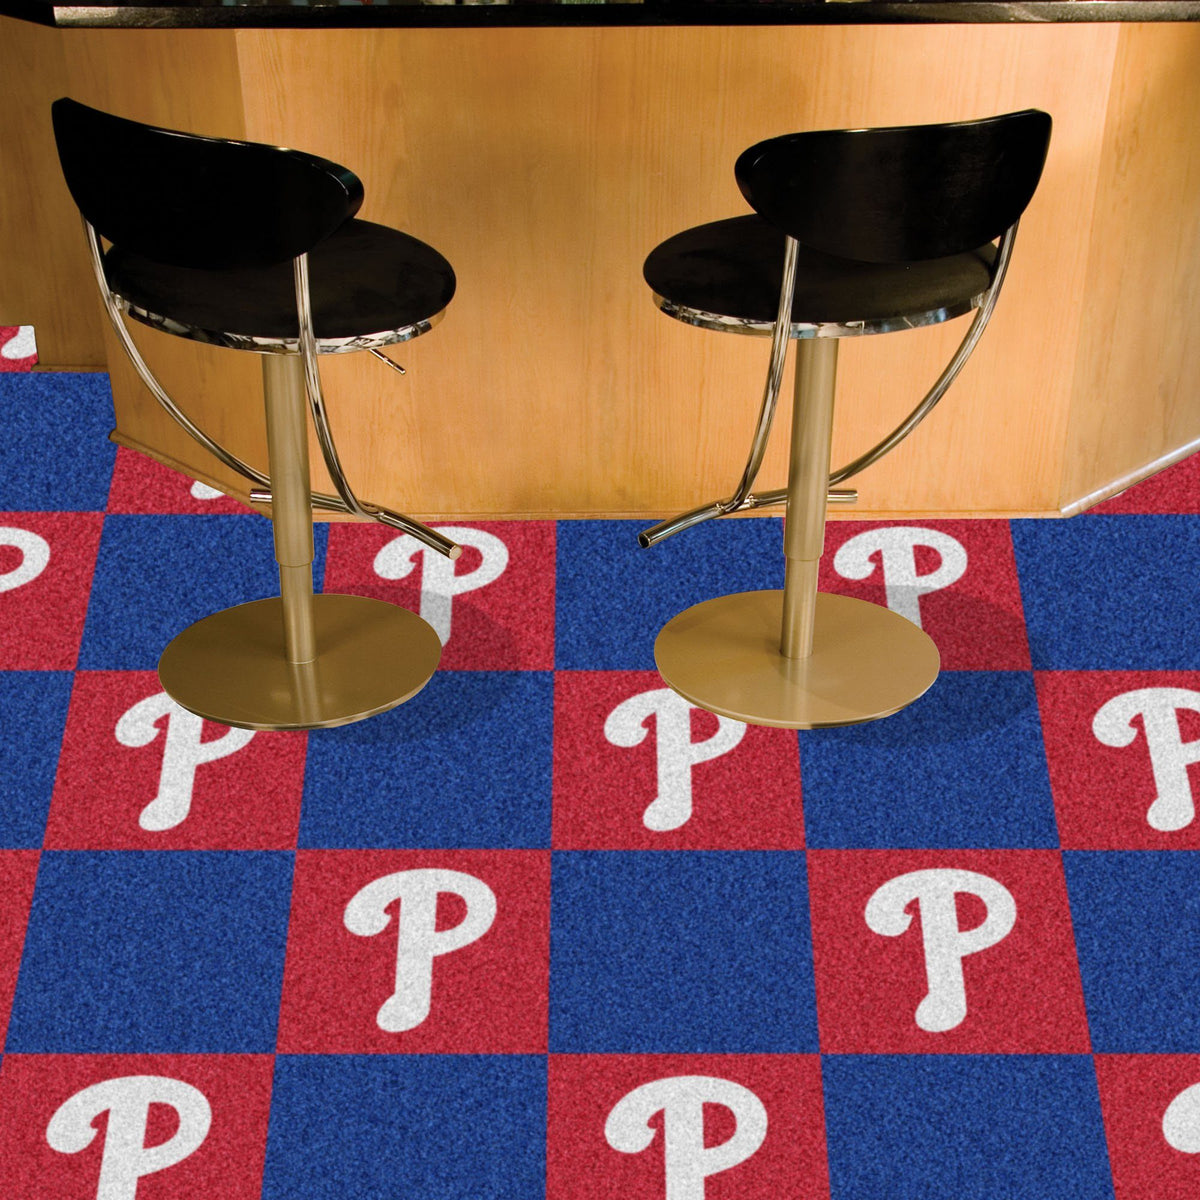 MLB - Team Carpet Tiles MLB Mats, Carpet Tile Flooring, Team Carpet Tiles, MLB, Home Fan Mats Philadelphia Phillies